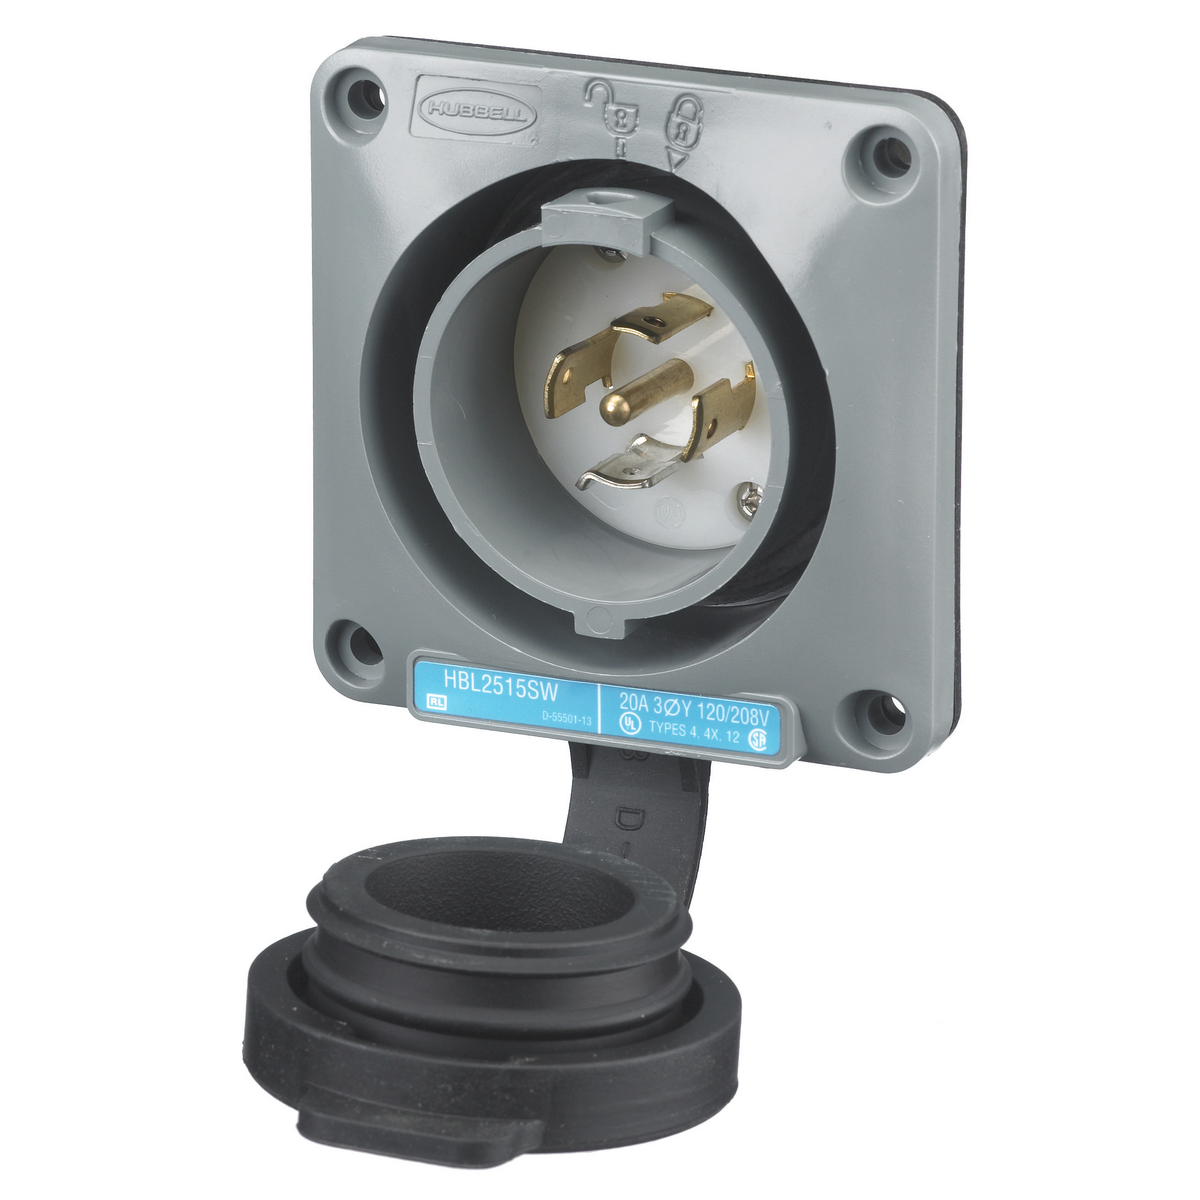 Hubbell Twist-Lock Flanged Receptacle 3 Pole 4 Wire 20A 3ØY 120//208V AC